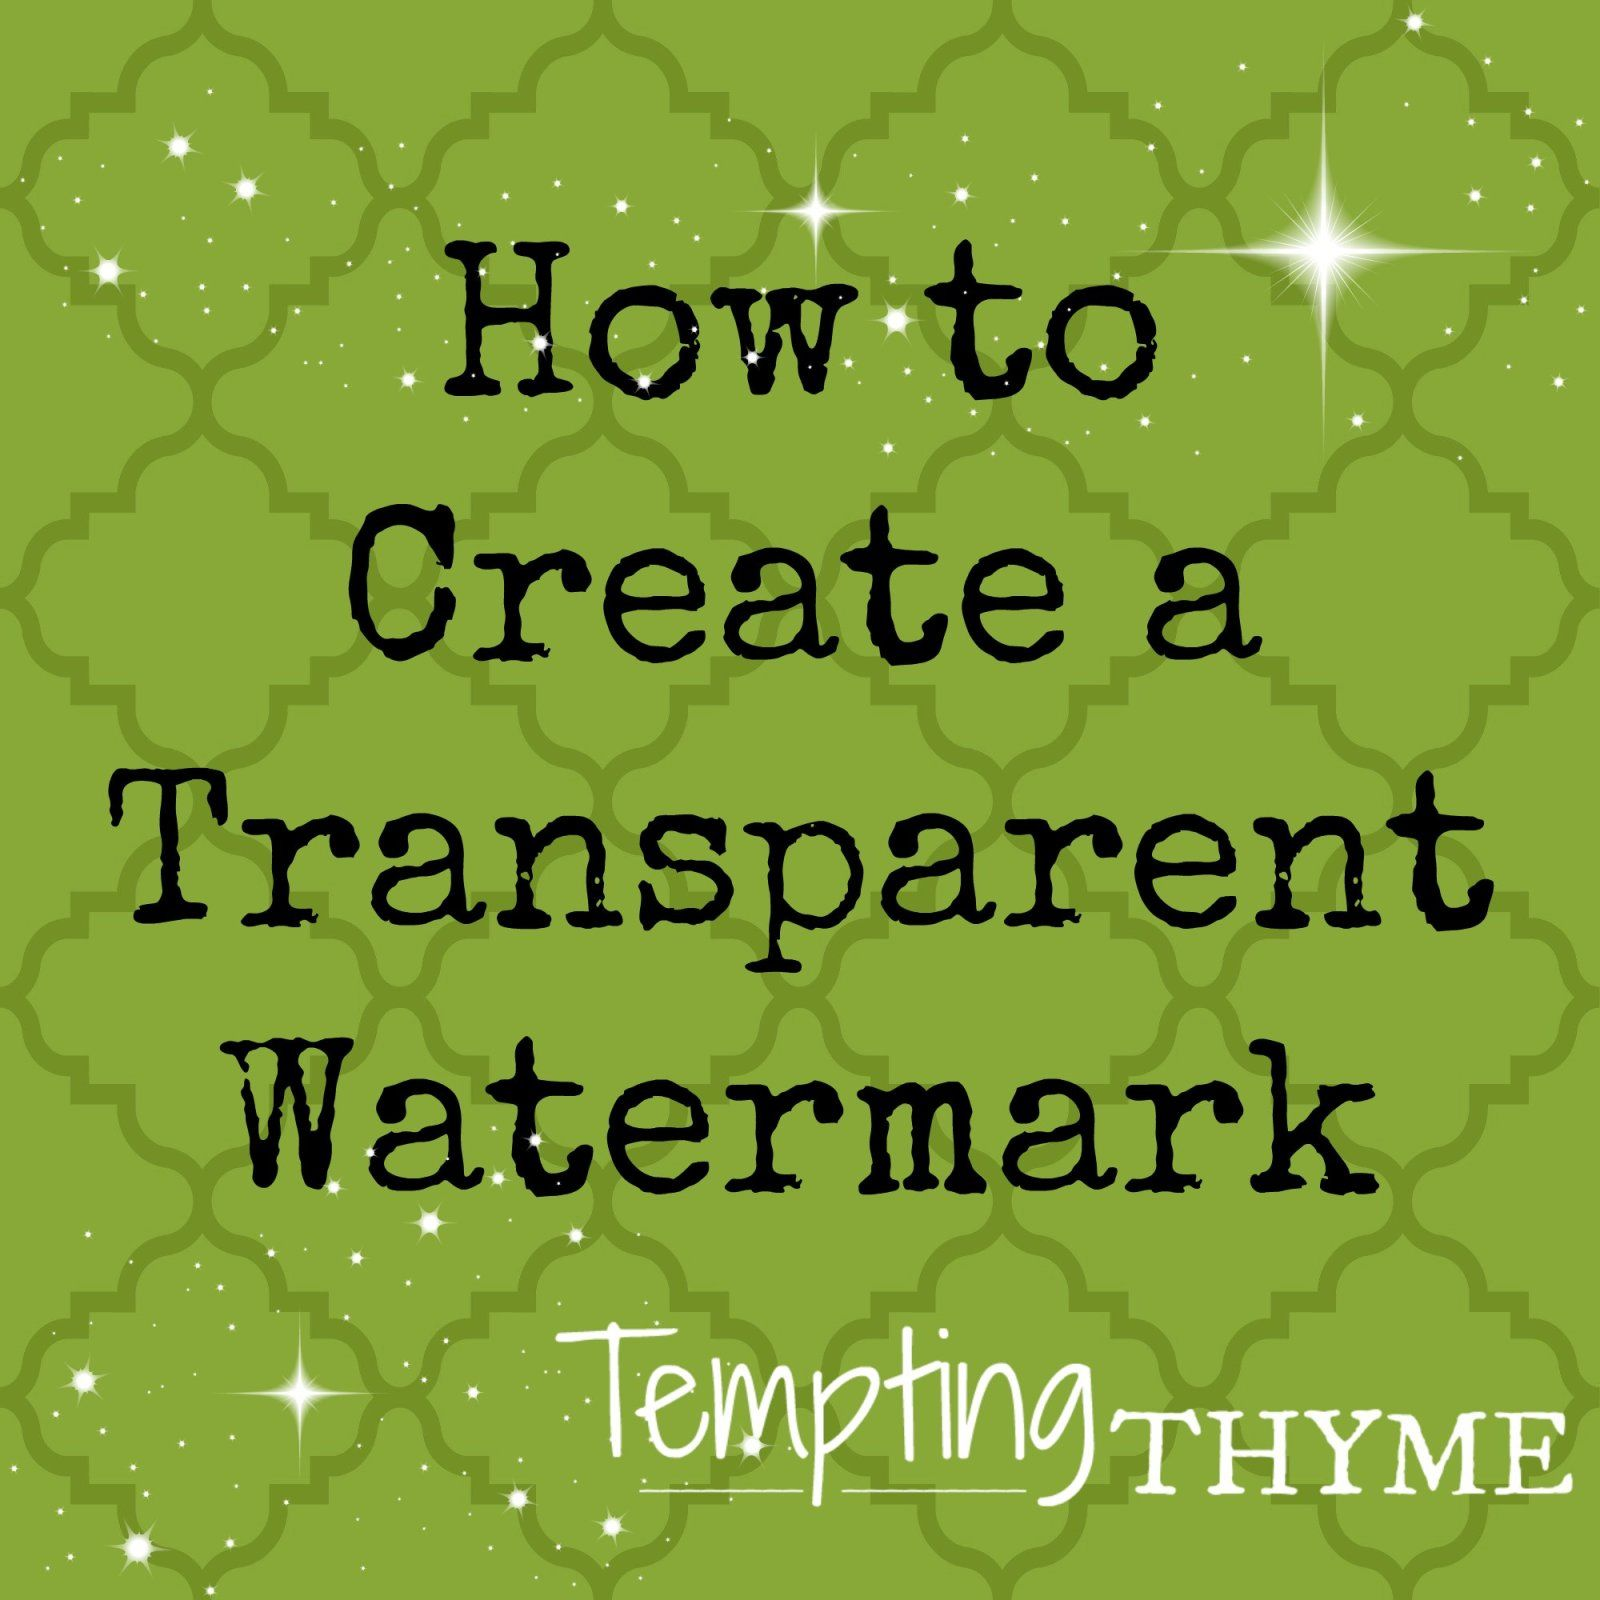 How to Create a Transparent Watermark! Photography